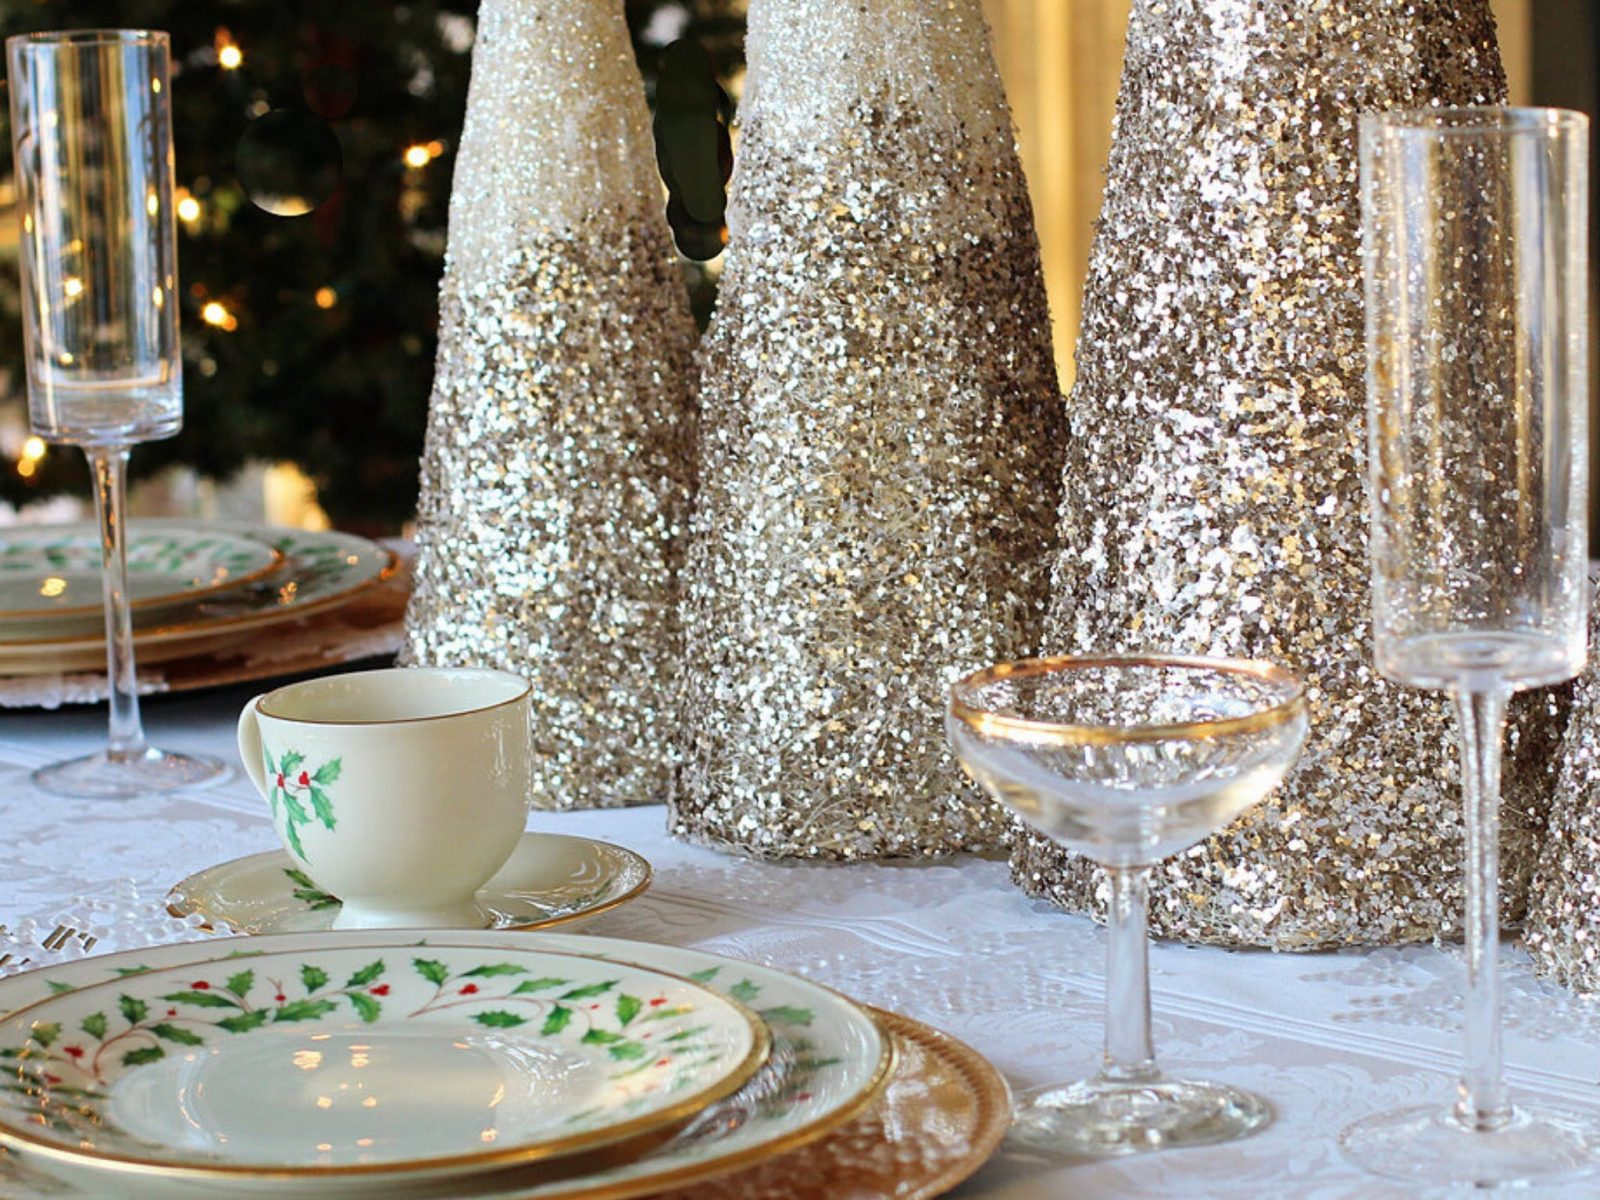 Lunch table layout with Christmas decorations